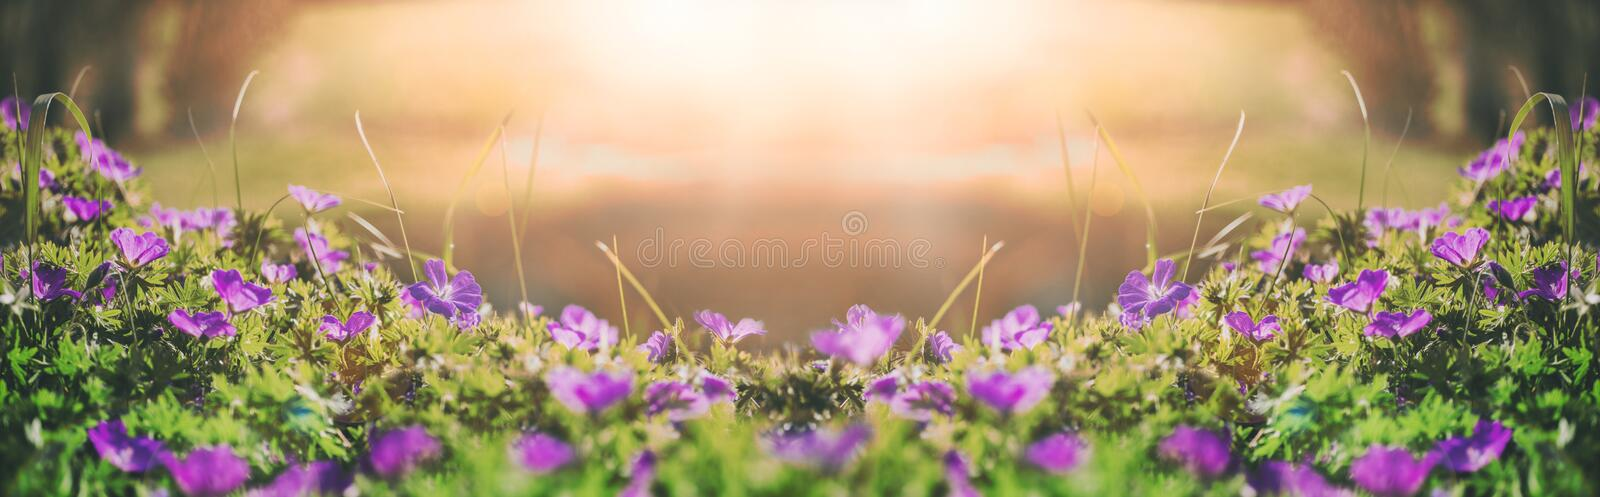 Download Flowers Bells Of The Field Background. Spring Landscape.Toning. Stock Photo - Image of colorful, beautiful: 93248194